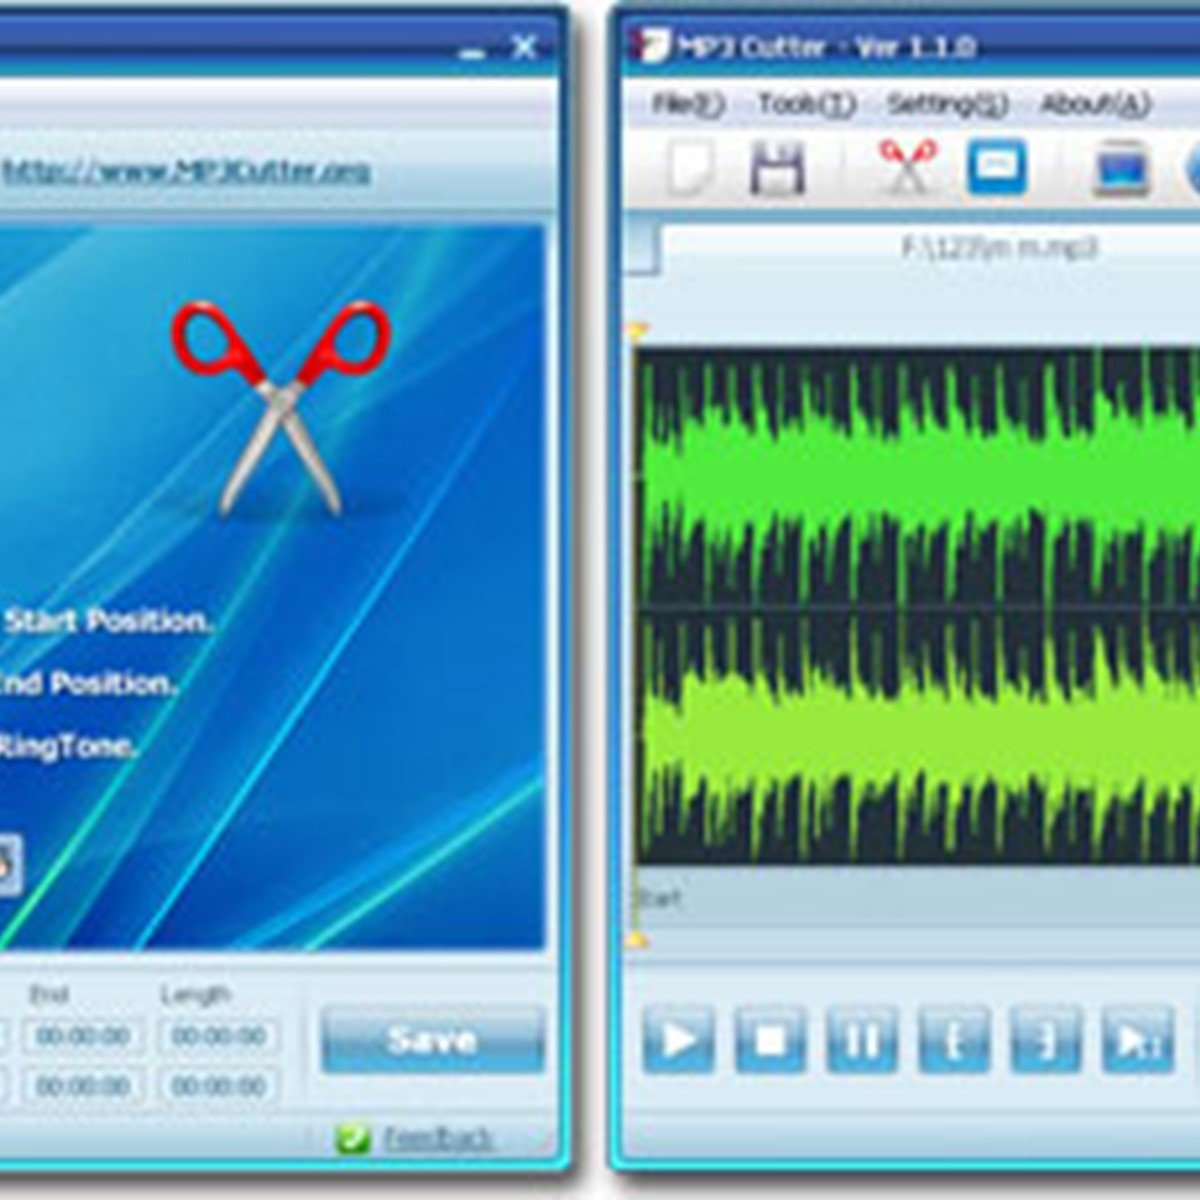 Mp3 Cutter Online Editing ✓ The Galleries of HD Wallpaper